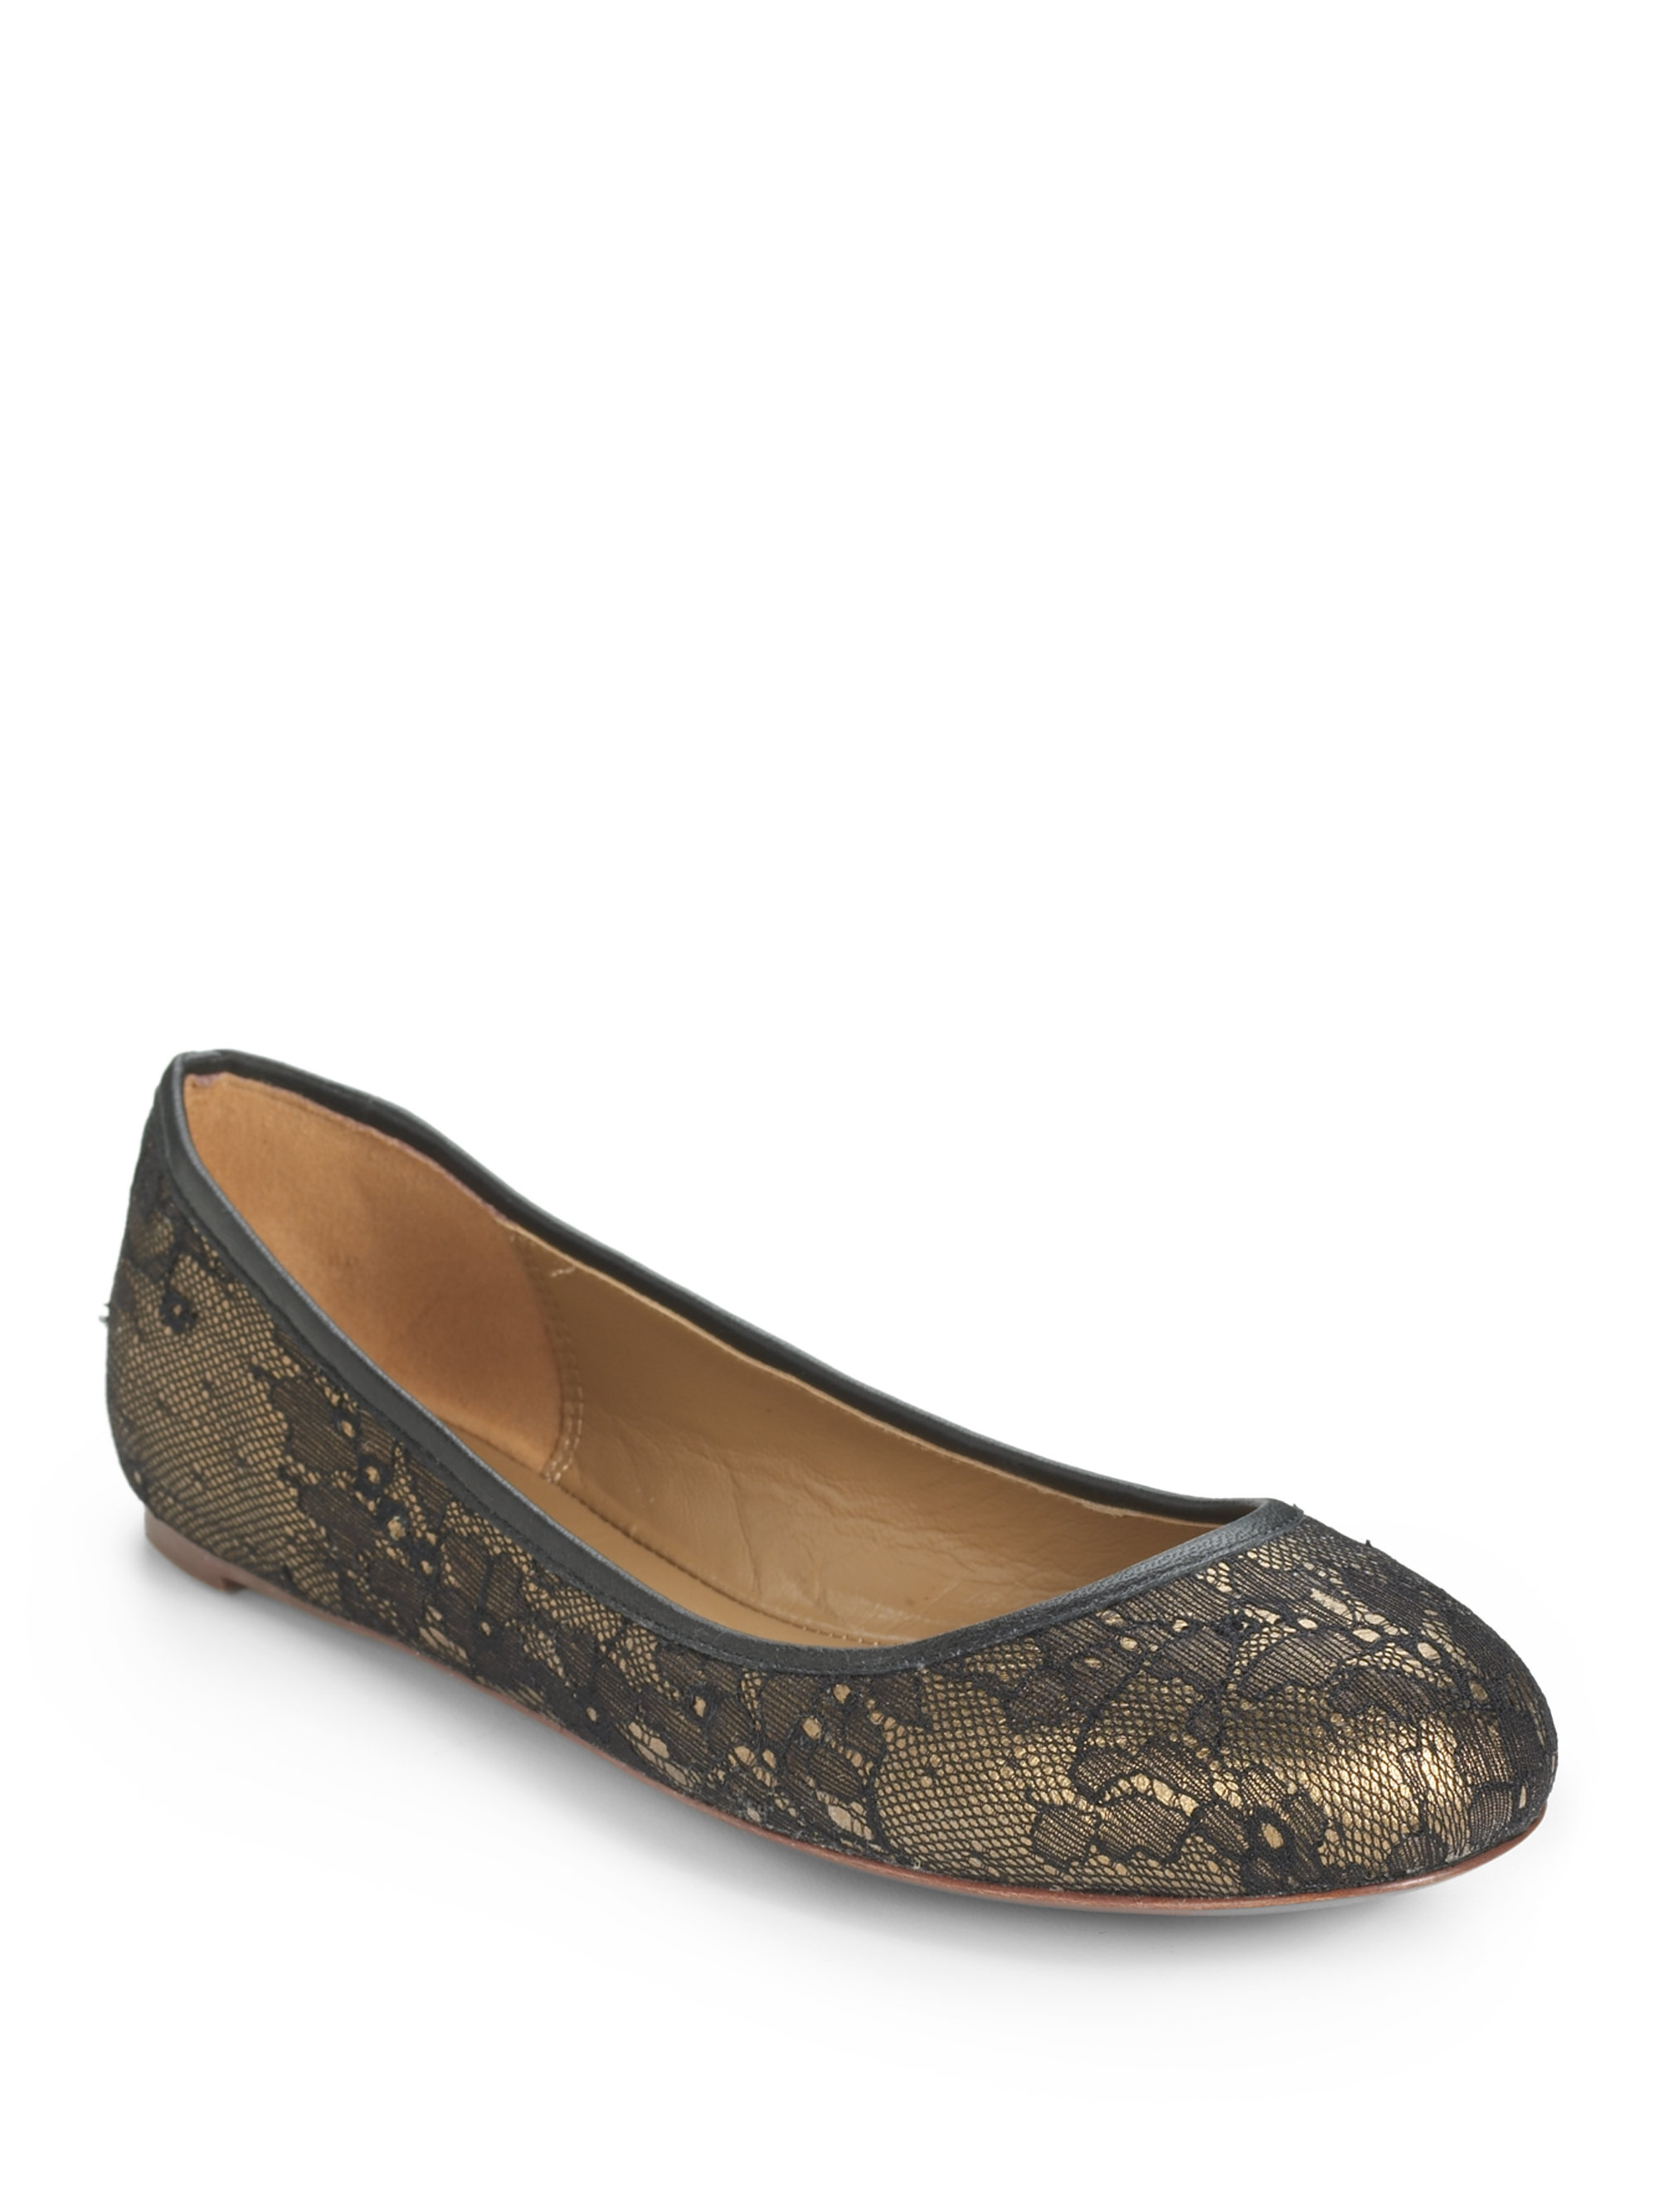 Elie Tahari Shoes Flats